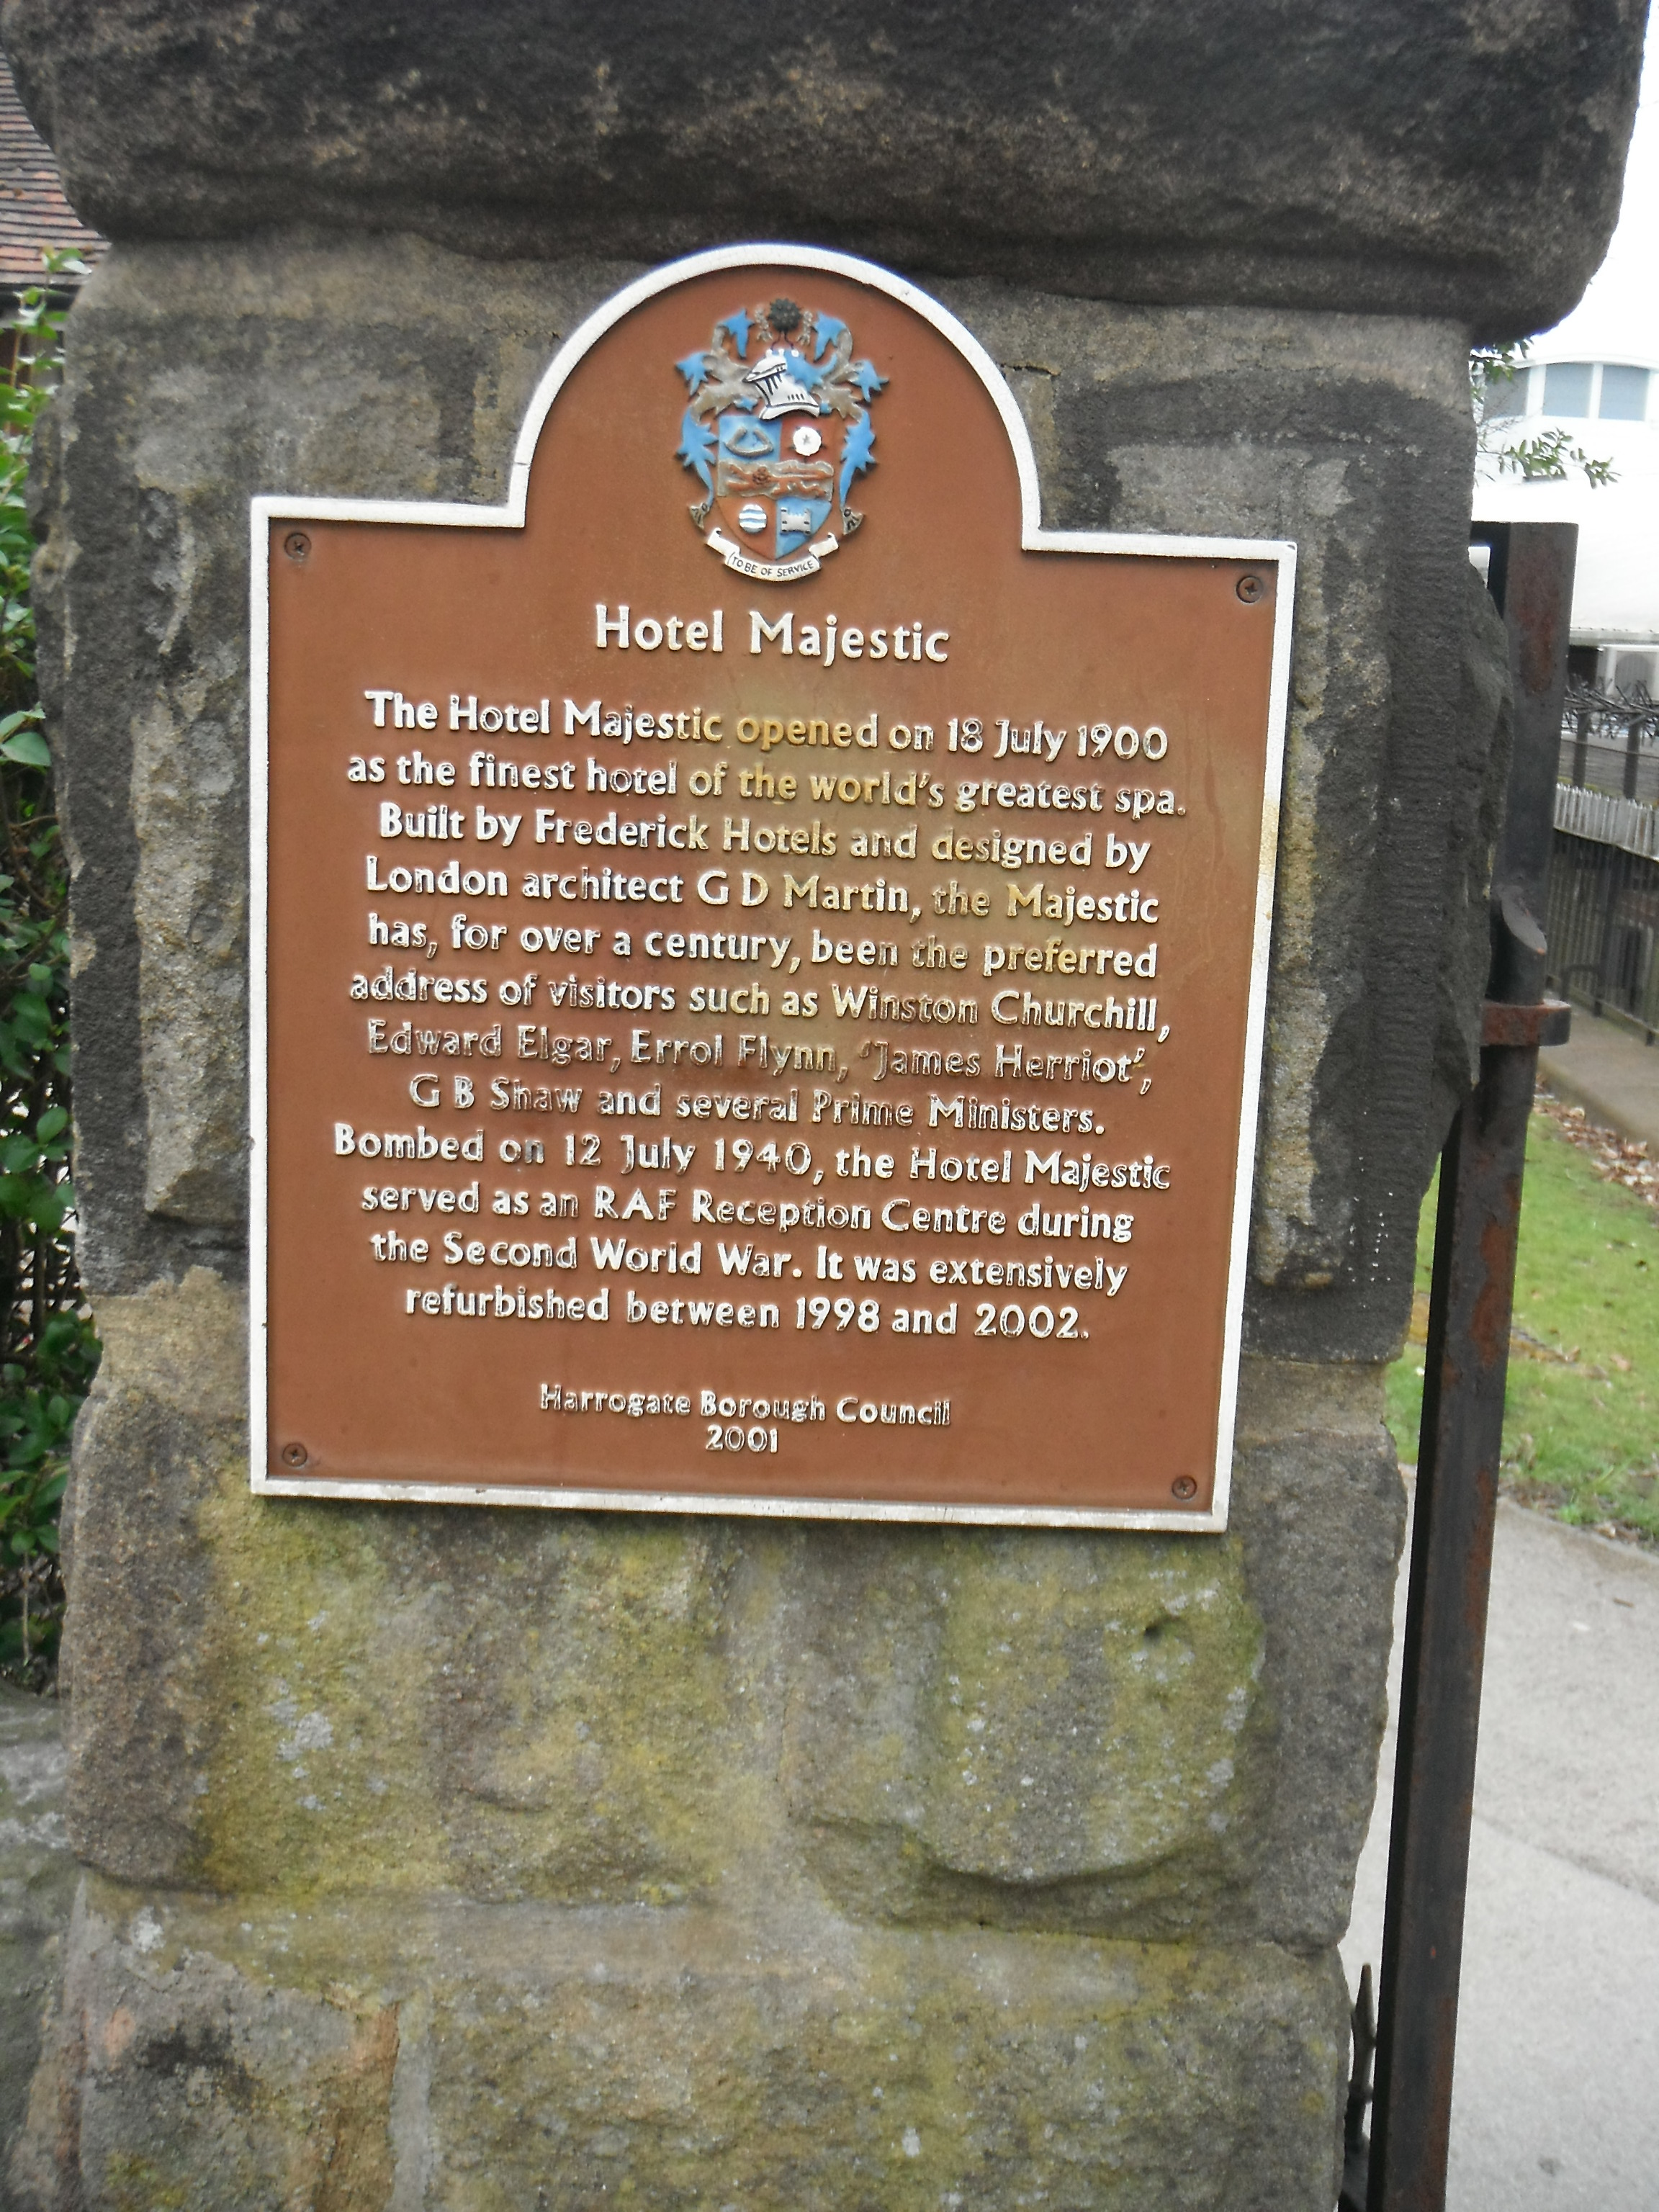 Photo taken by me – plaque on the entrance gates to The Majestic Hotel, Harrogate